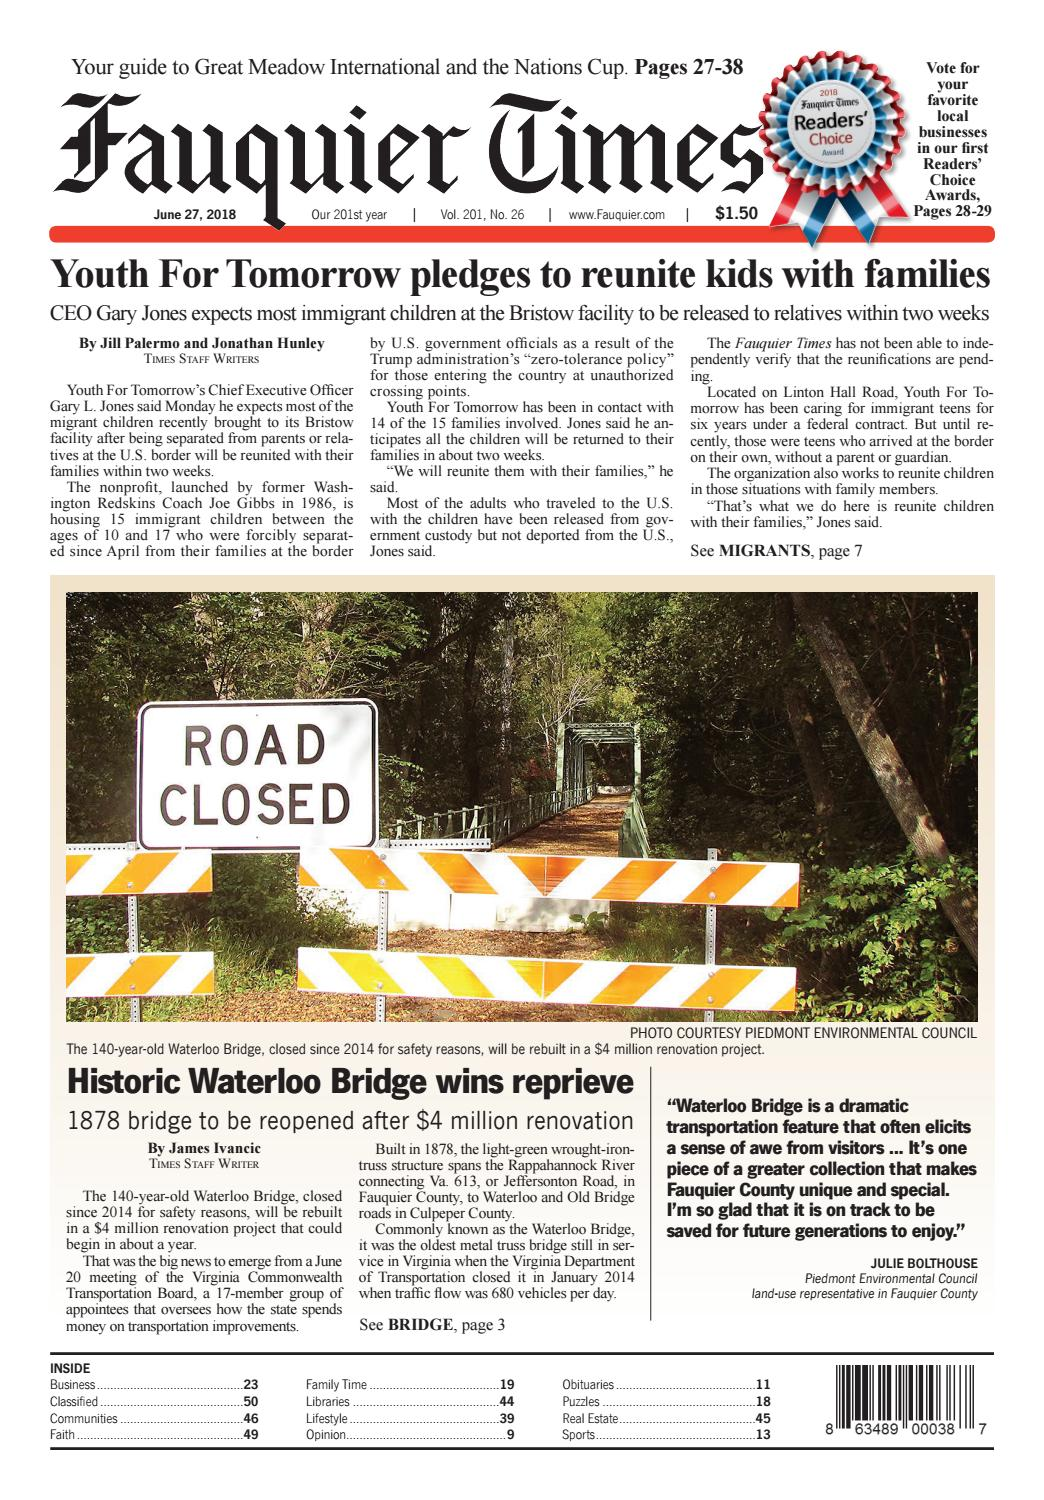 Lilley Tile And Stone Llp fauquier times june 27, 2018fauquier times - issuu